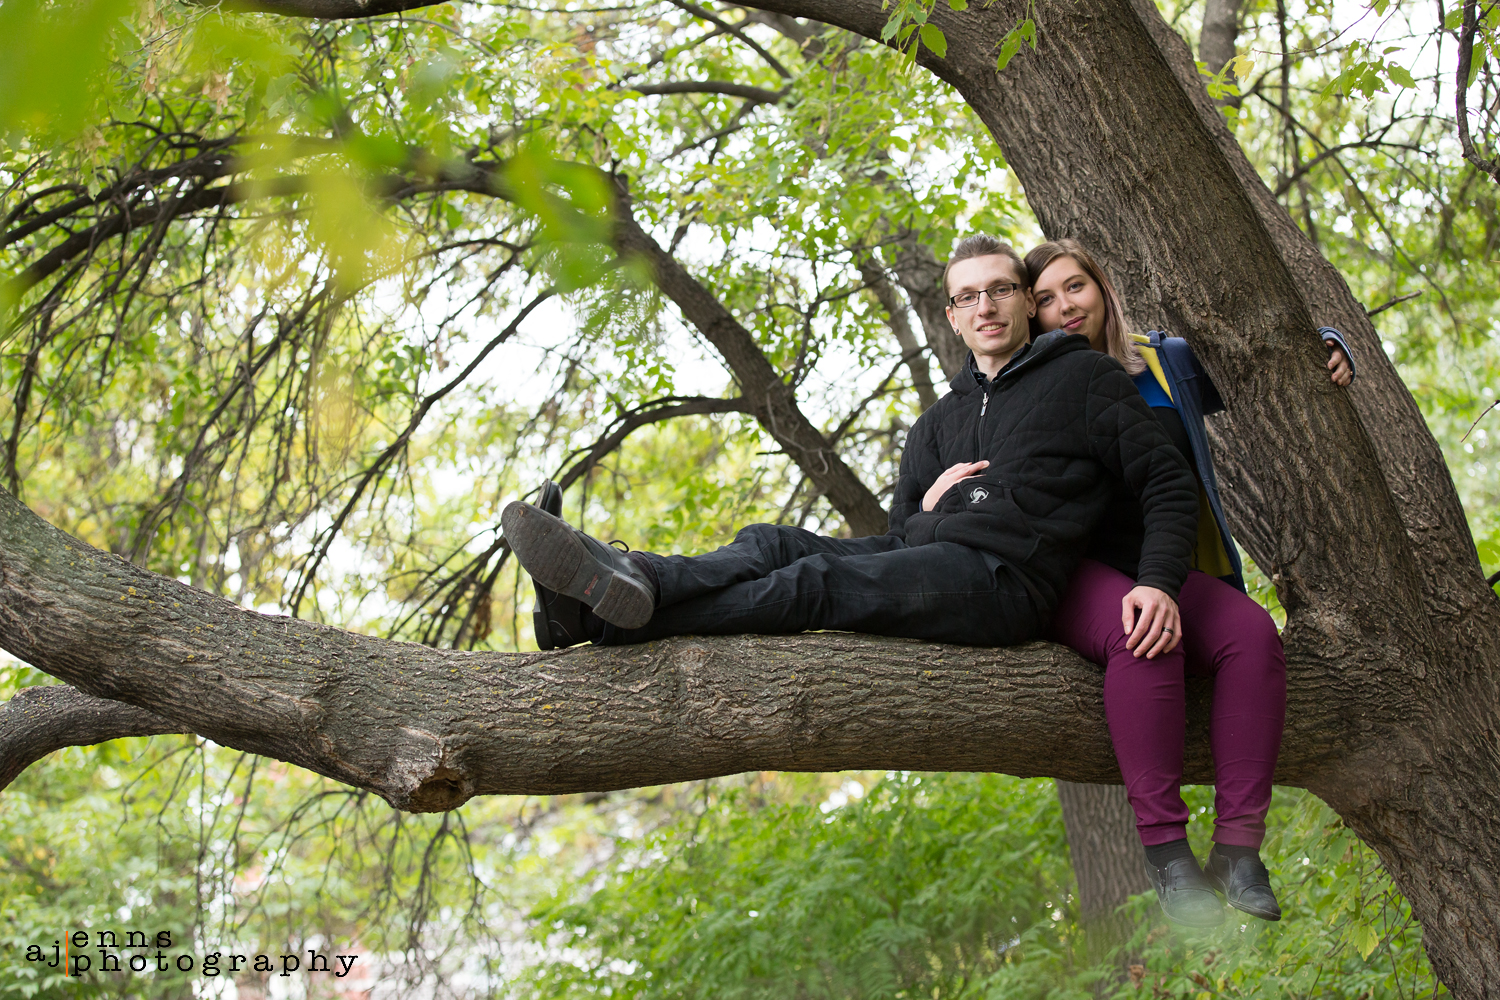 Robyn and Darryl sitting a tree branch